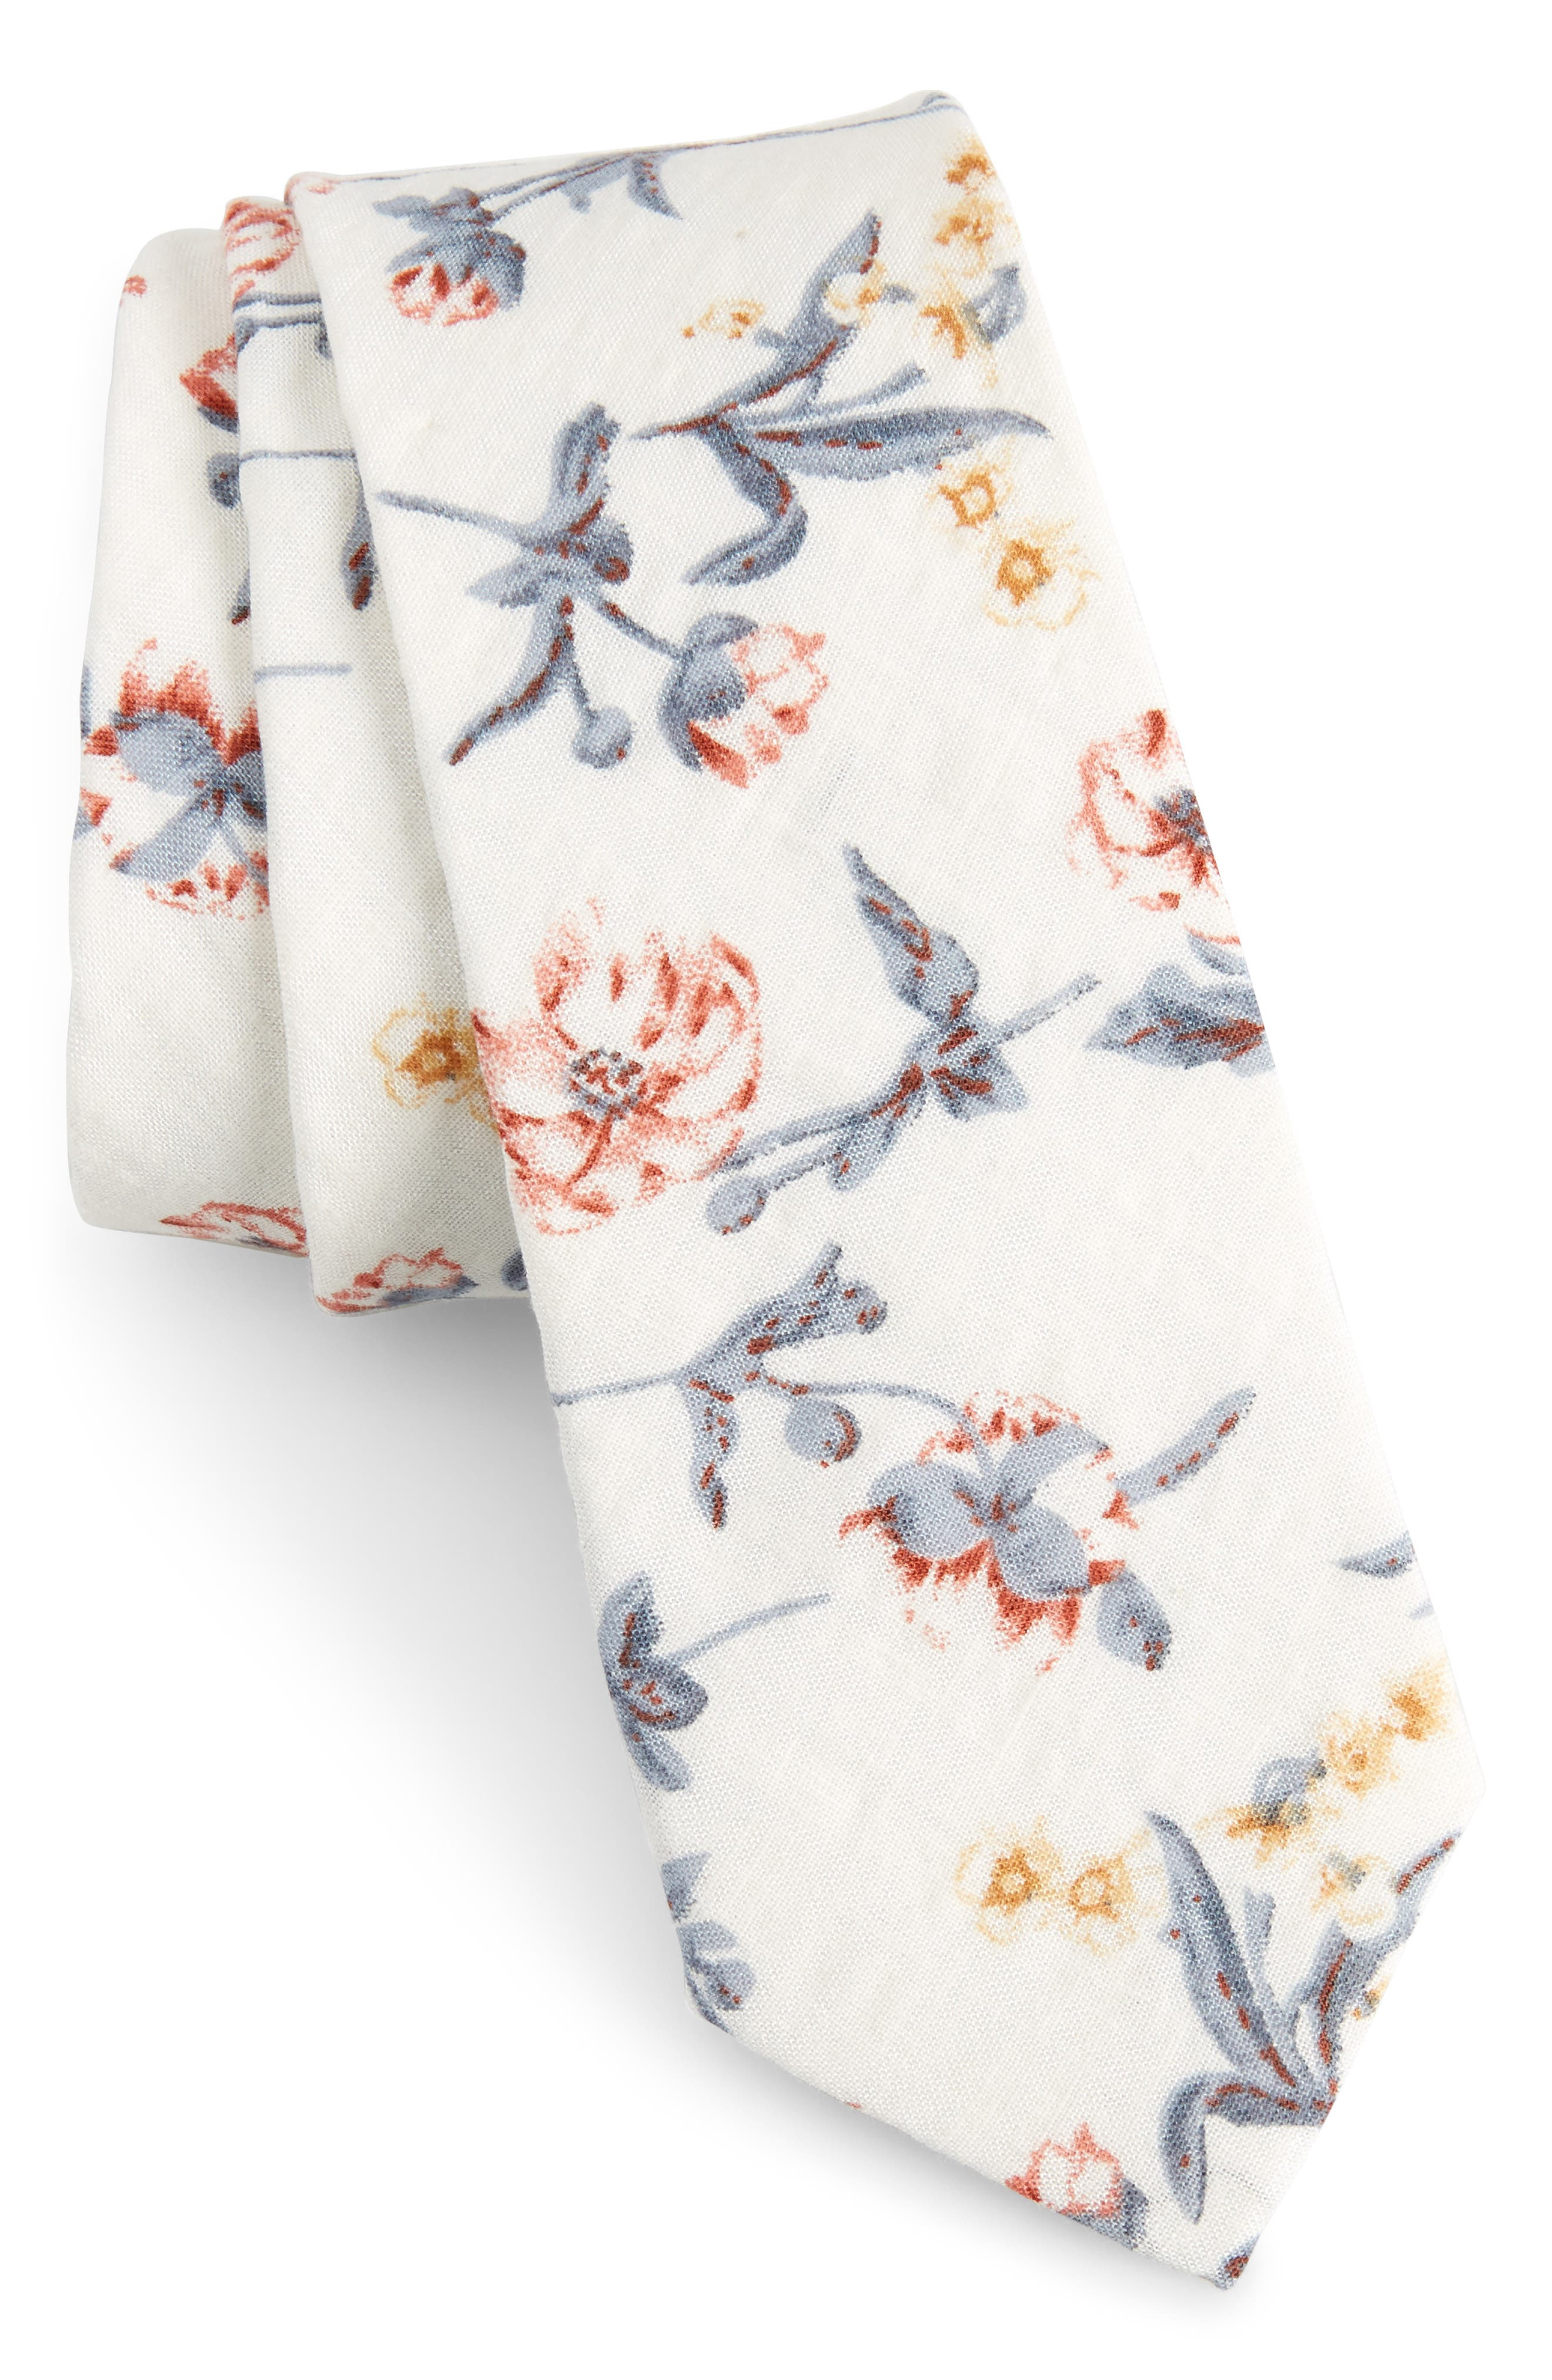 Nunley Floral Cotton Skinny Tie,                             Main thumbnail 1, color,                             100